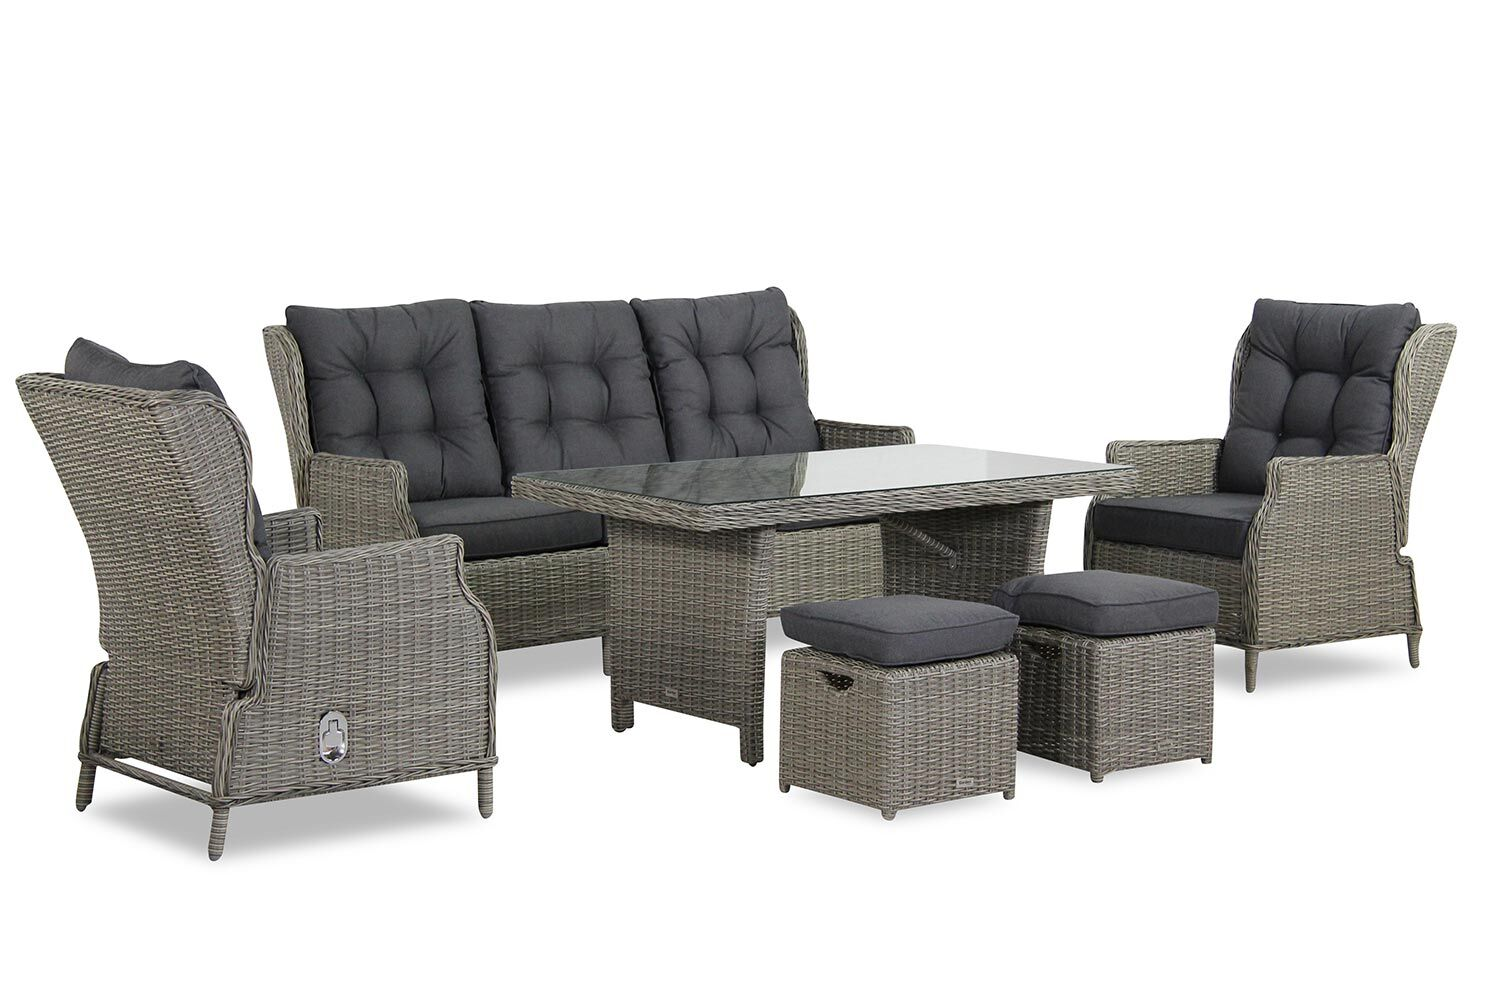 Garden Collections New Castle dining loungeset 6-delig